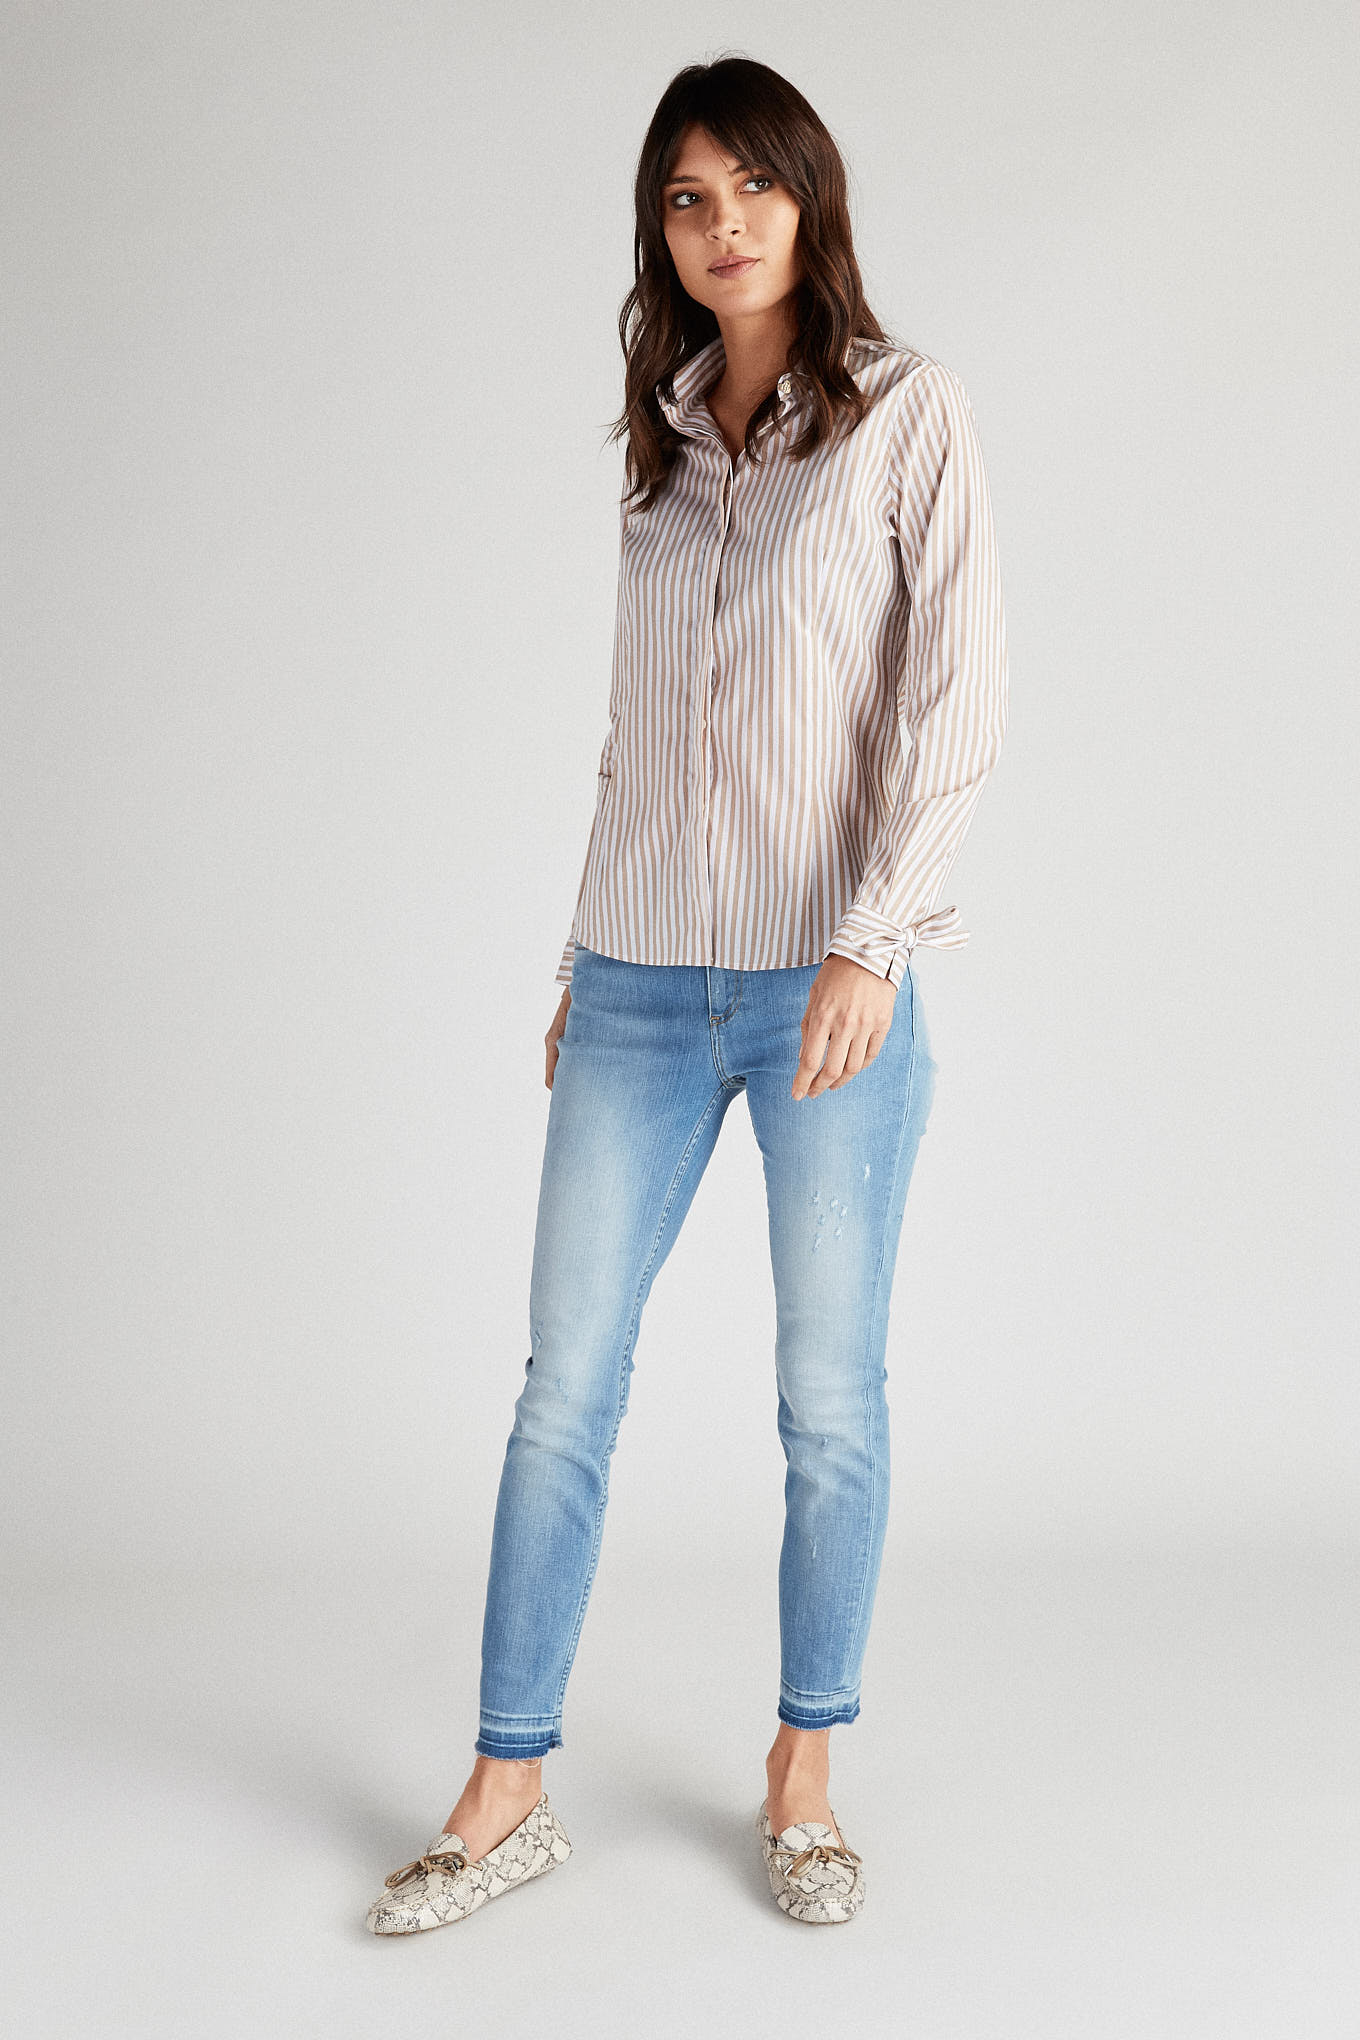 Shirt Light Beige Classic Woman